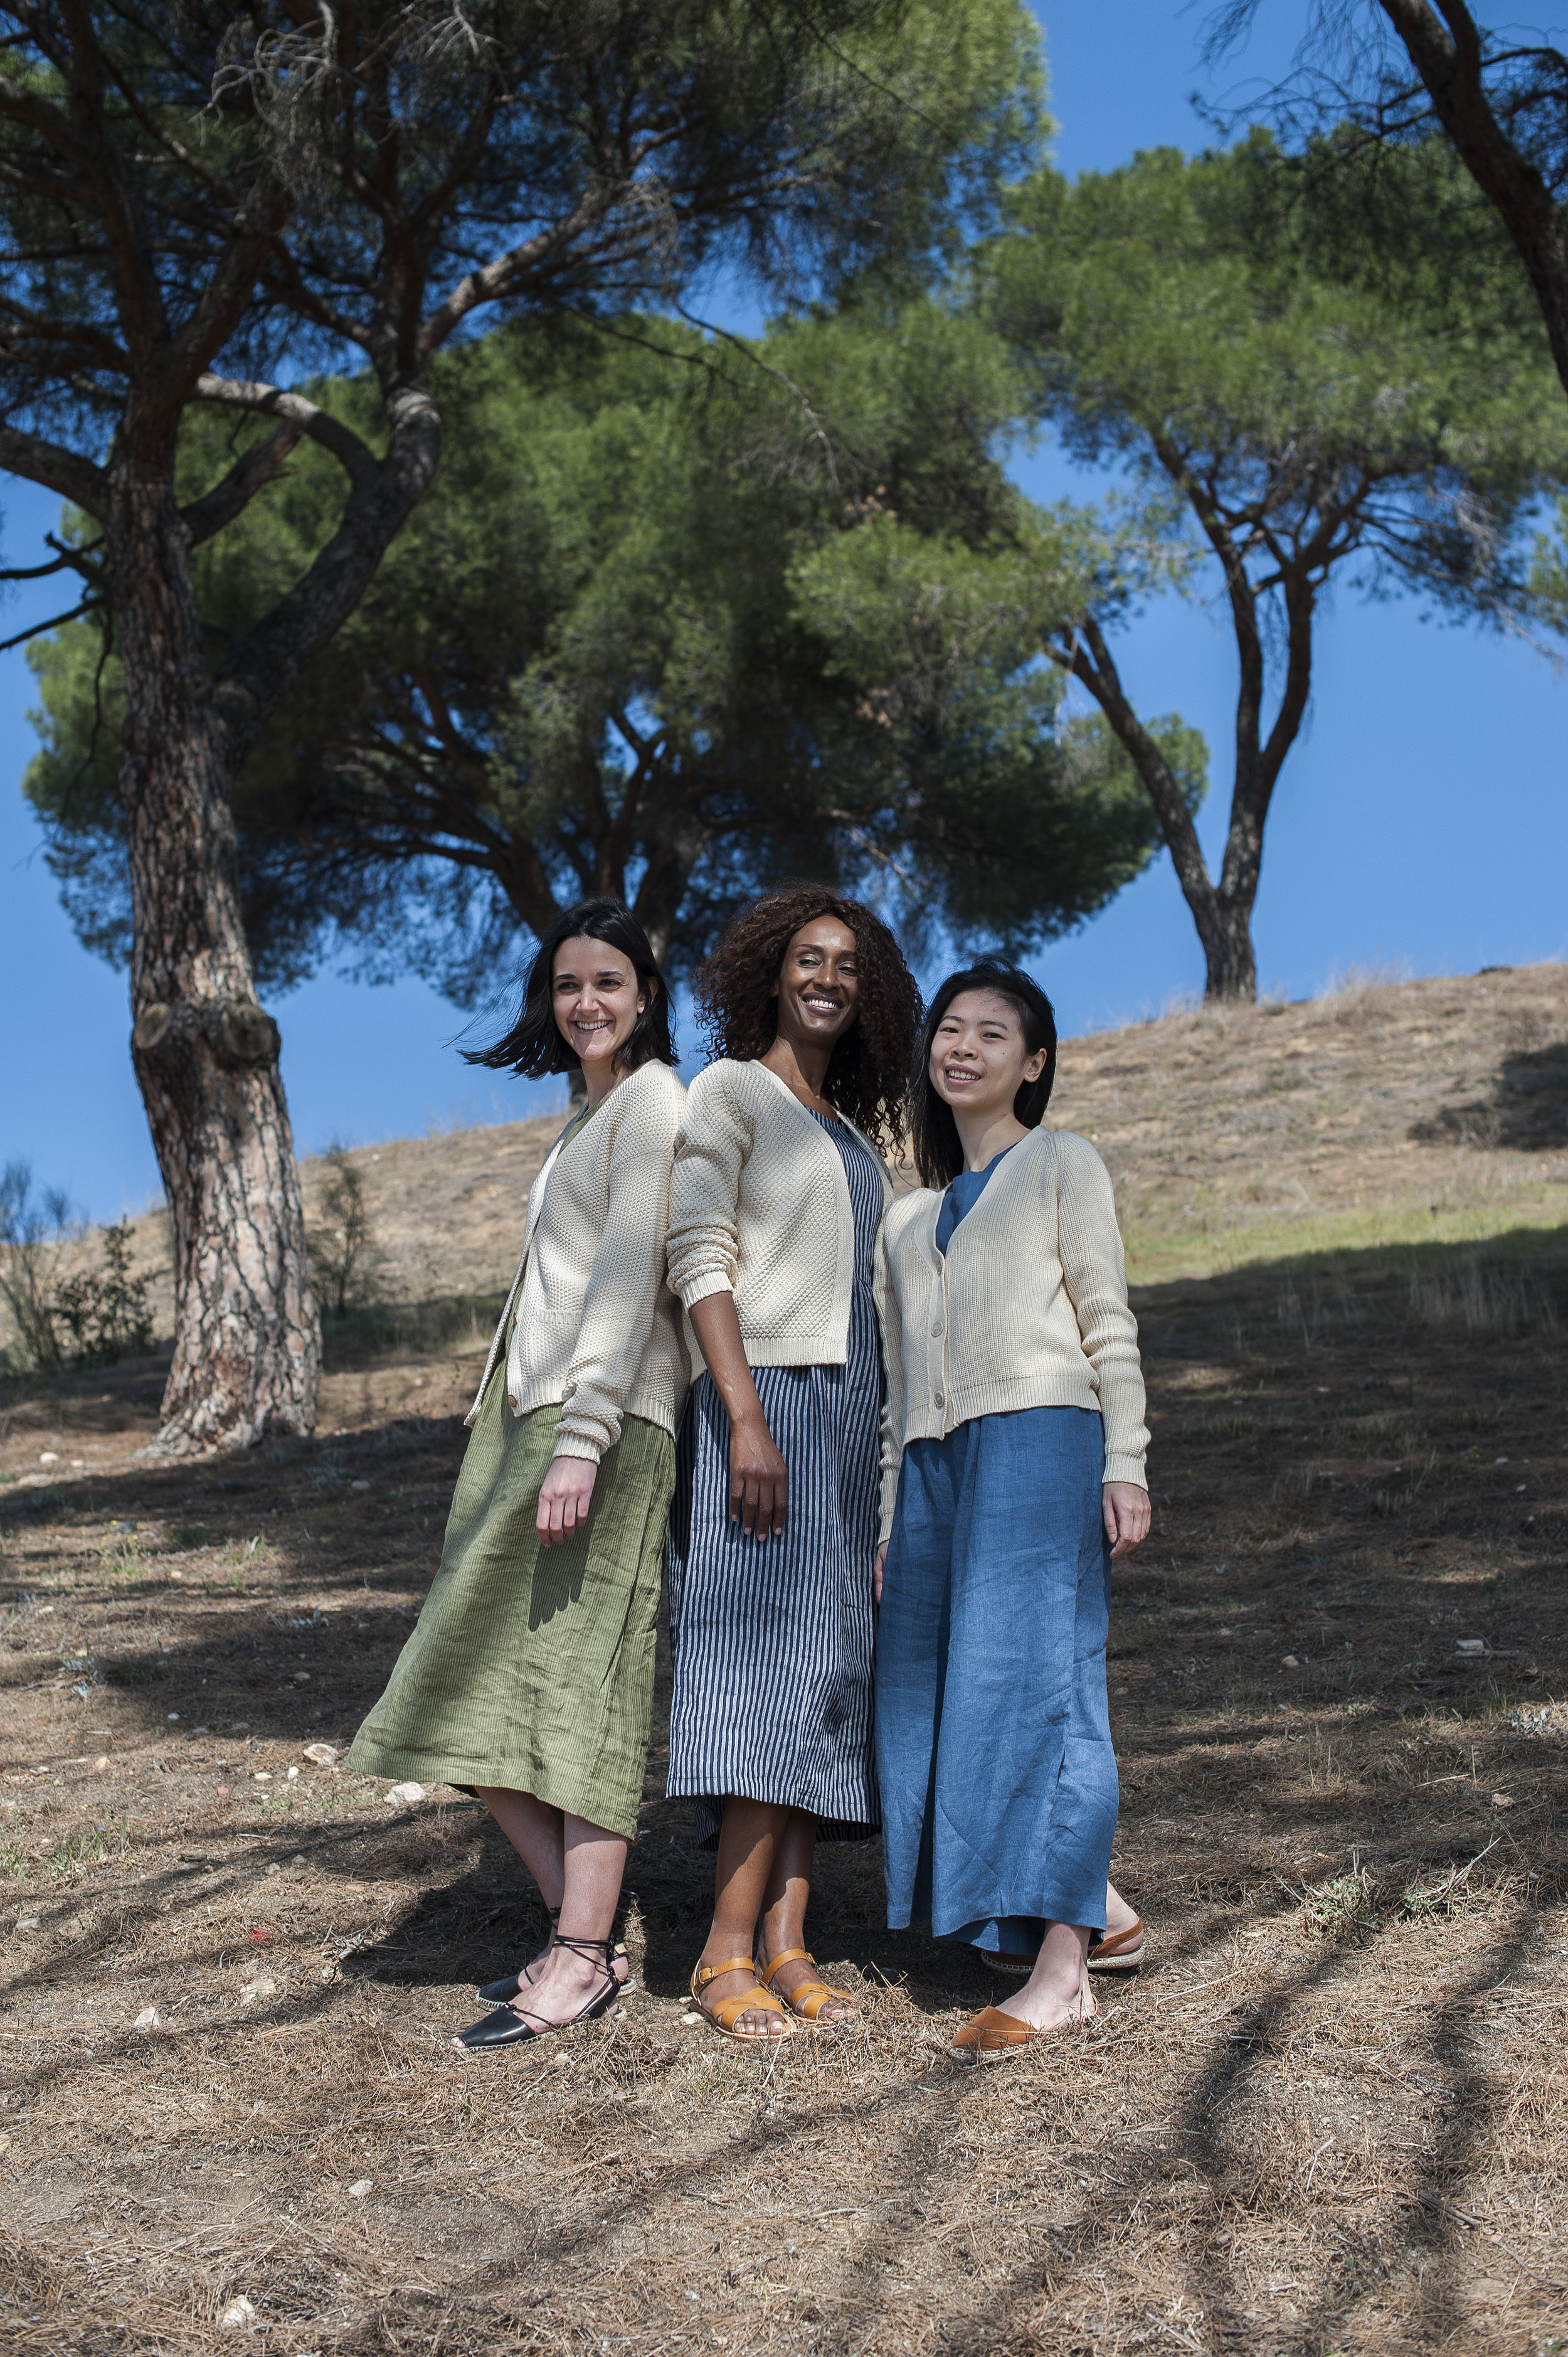 Lenvers Fashion new line of Organic Cotton Knitwear, paired with some Pyne & Smith dresses!